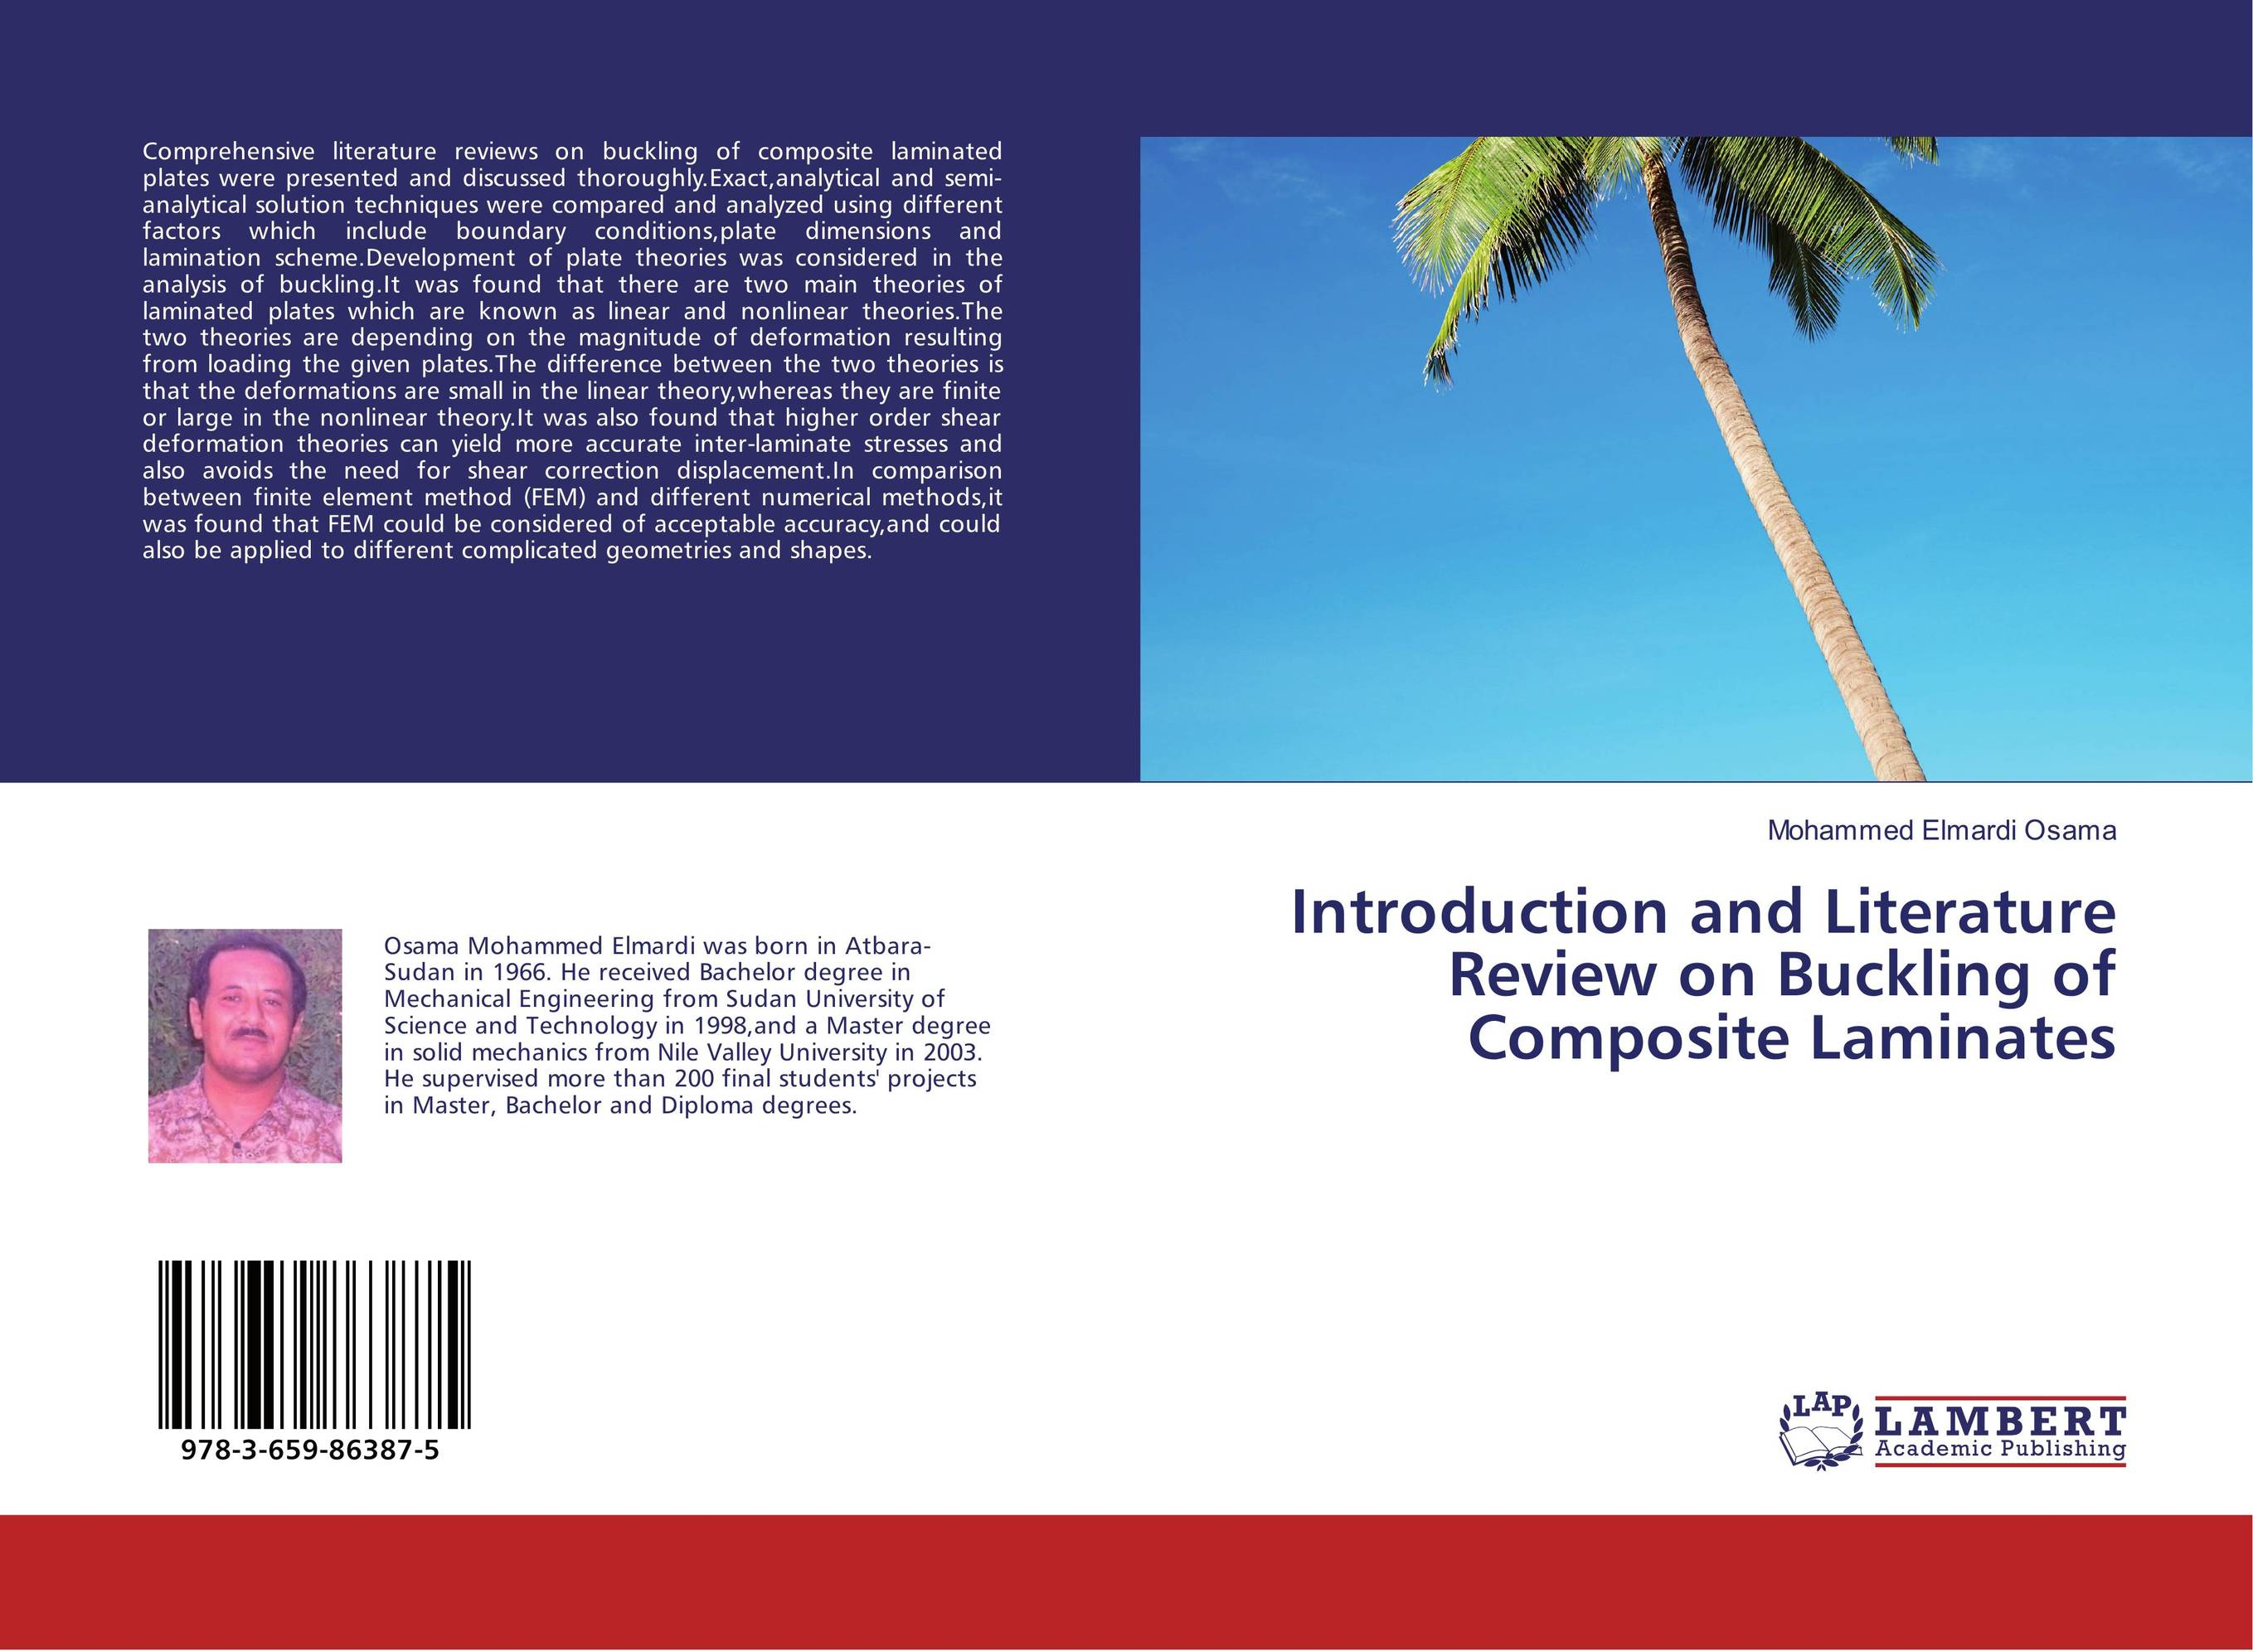 Introduction and Literature Review on Buckling of Composite Laminates